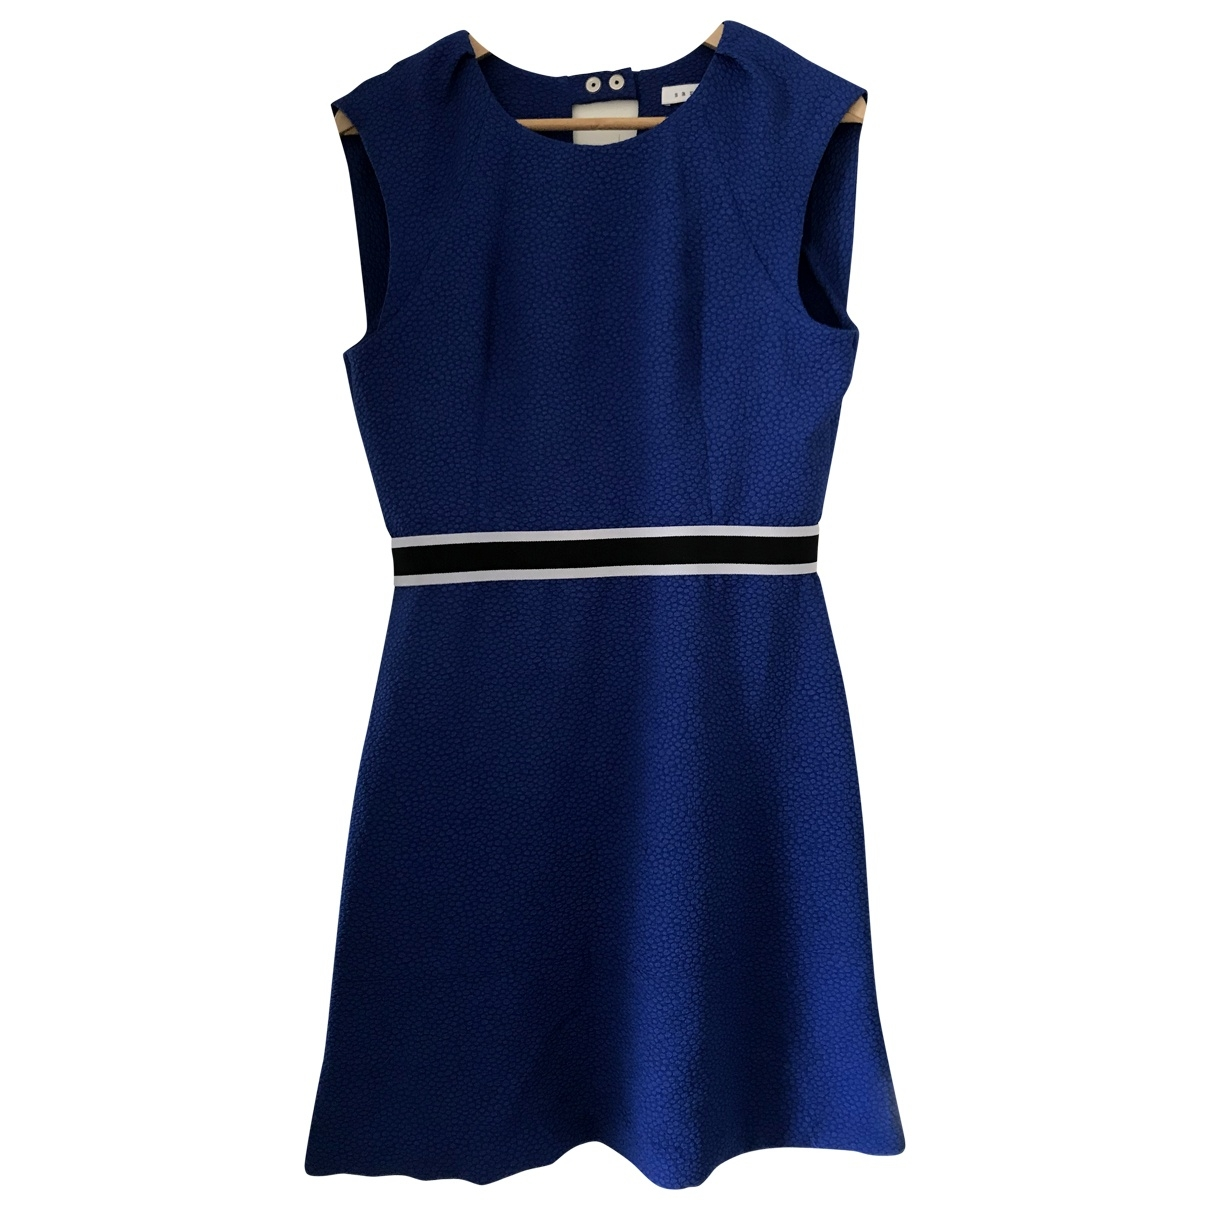 Sandro \N Blue dress for Women 40 FR